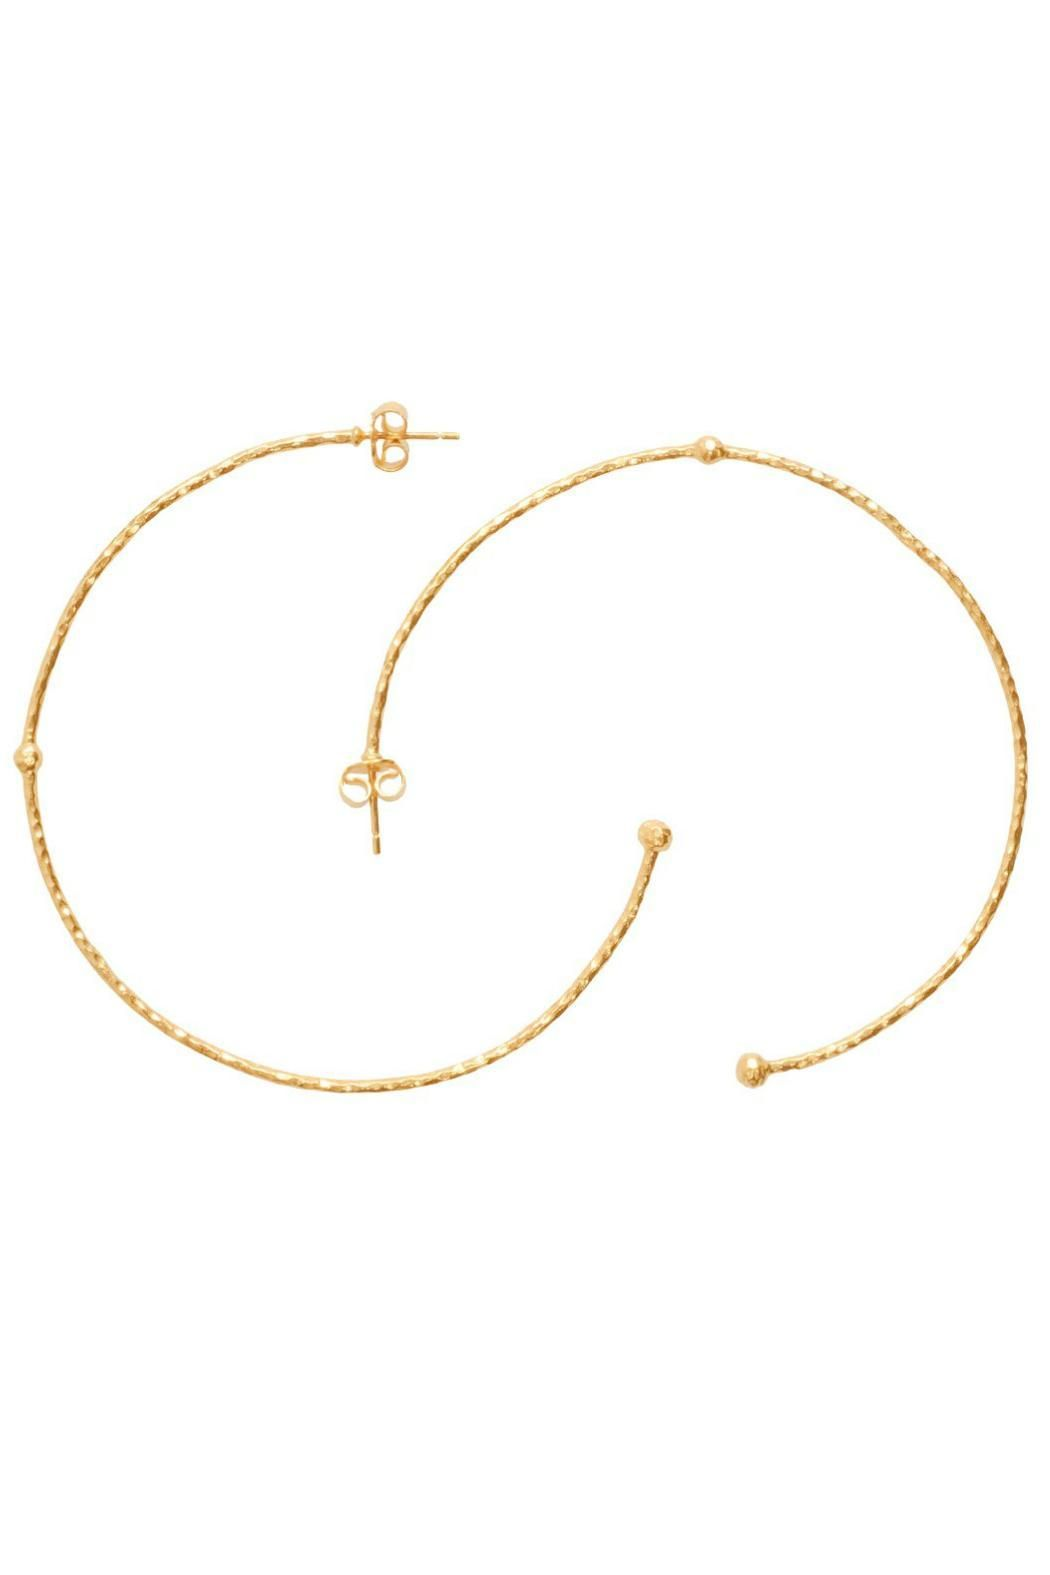 "Thin hammered hoop with a small ball detail at the end and another one in the center - lightweight versatile and easy to wear. 14K gold plated. Sterling Silver Backing.  Measurements: 2.5"" Diameter  Gold Hoop Earrings by Melinda Maria. Accessories - Jewelry - Earrings - Hoops Pennsylvania"